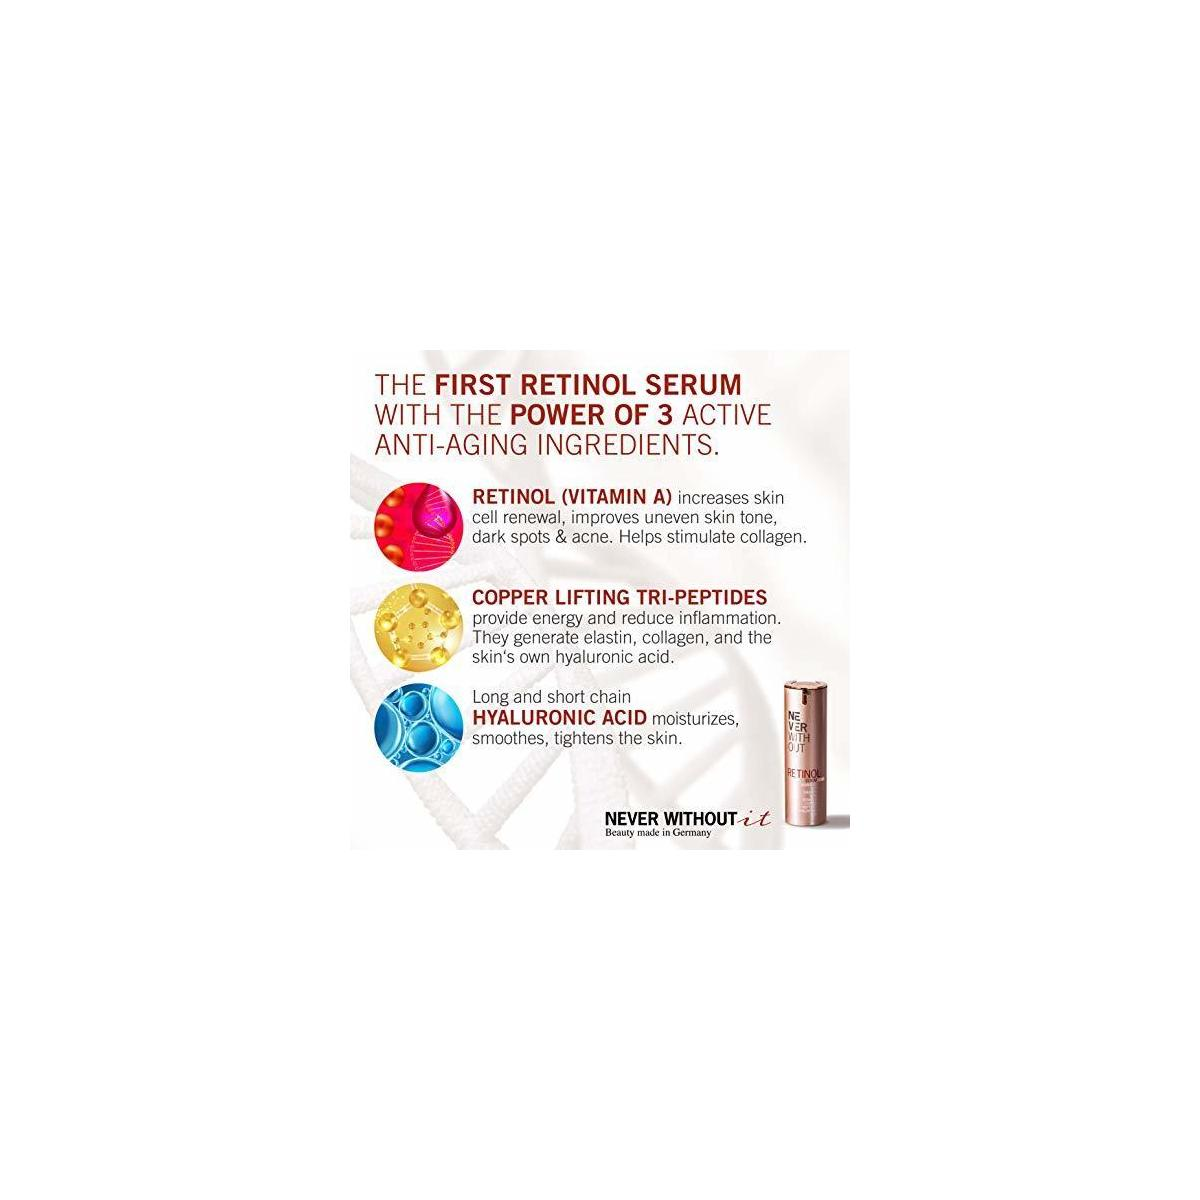 RETINOL SERUM With HYALURONIC ACID + Firming Peptides + Copper + Vitamins  | Tested VERY GOOD. Professional Skin Care Made in Germany